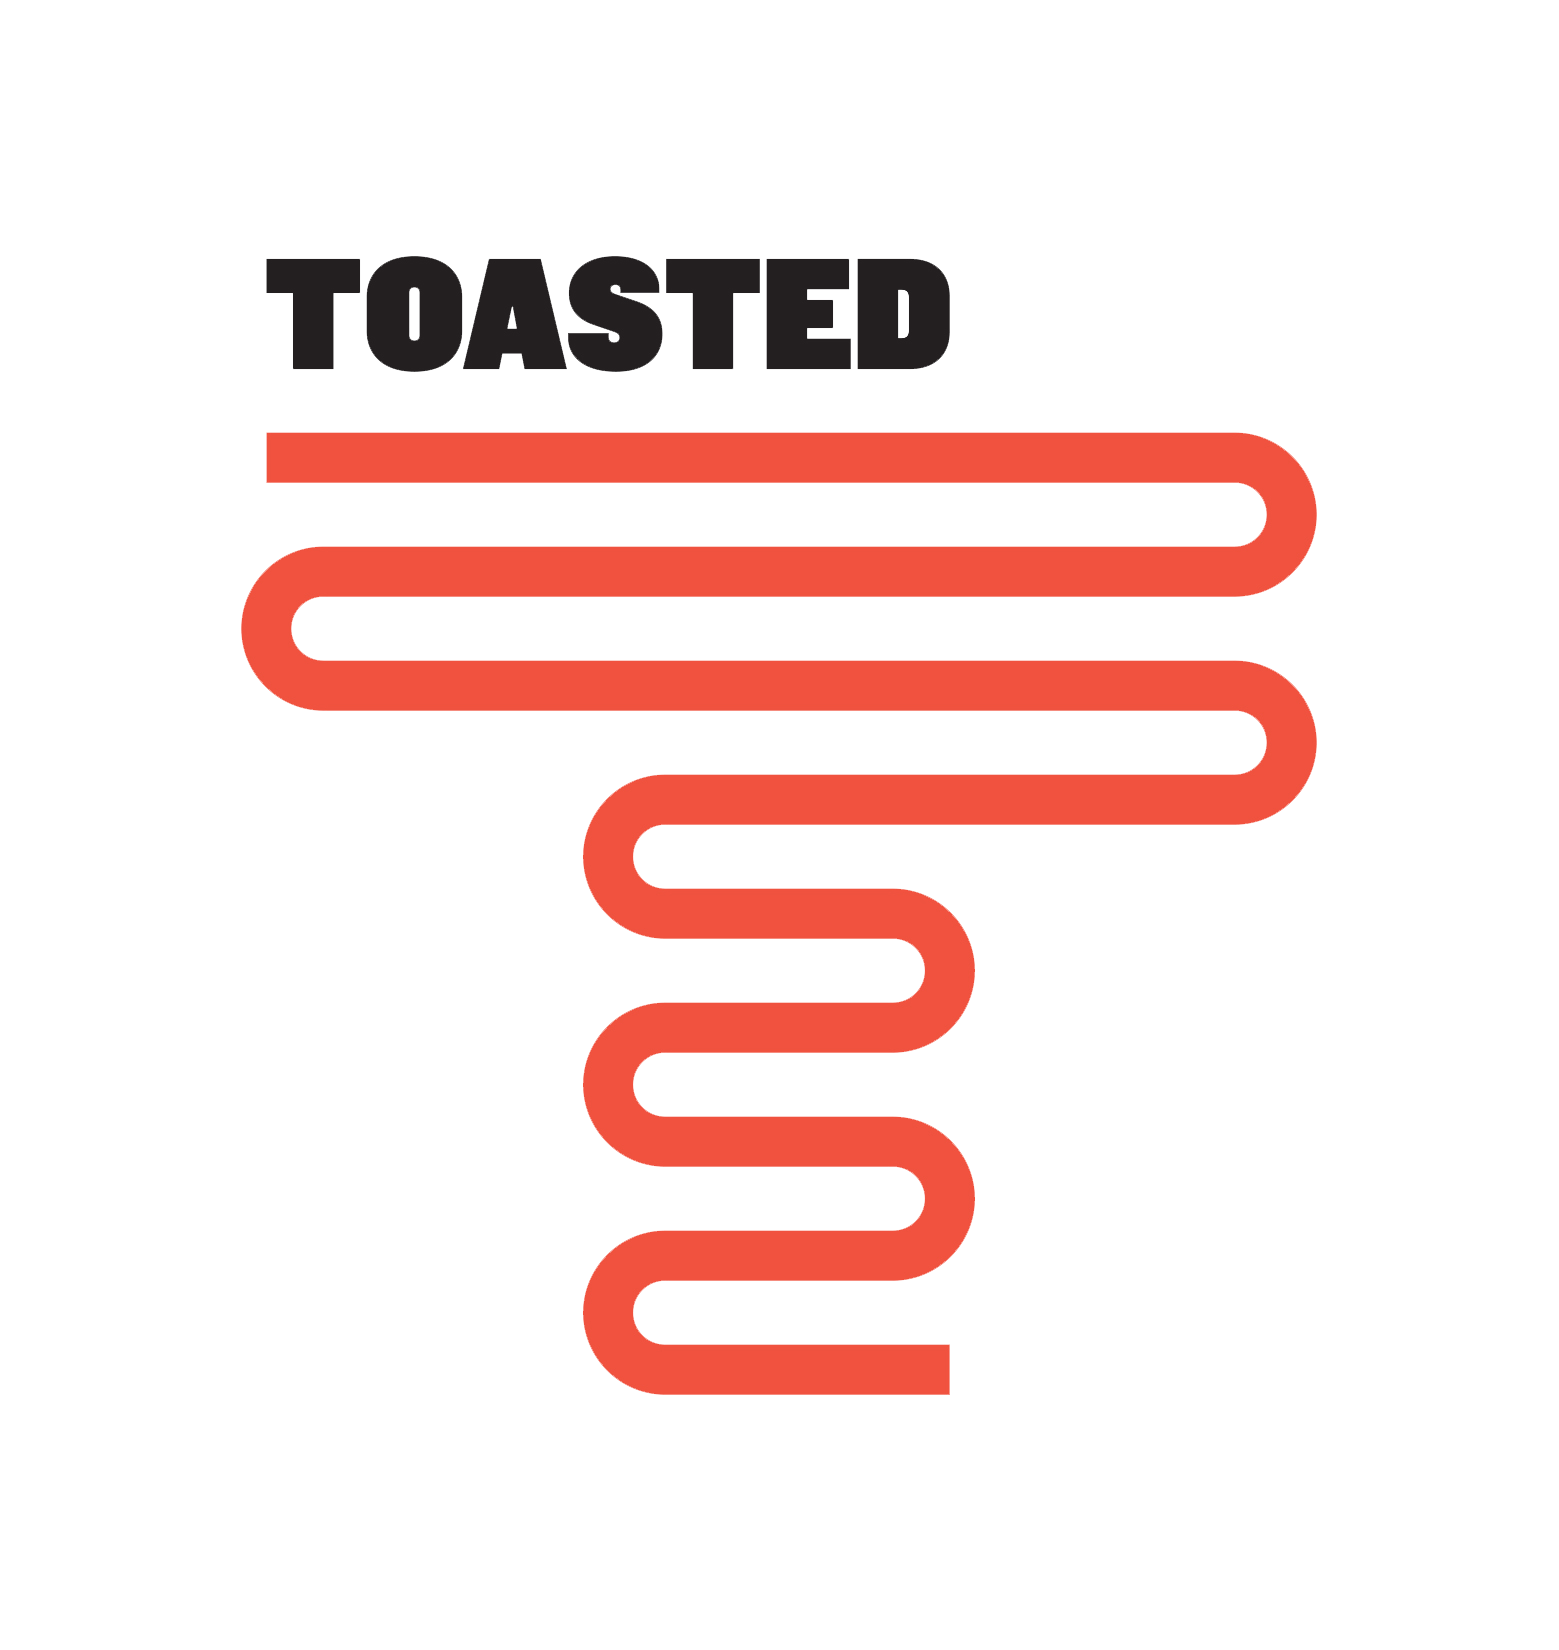 We Are Toasted